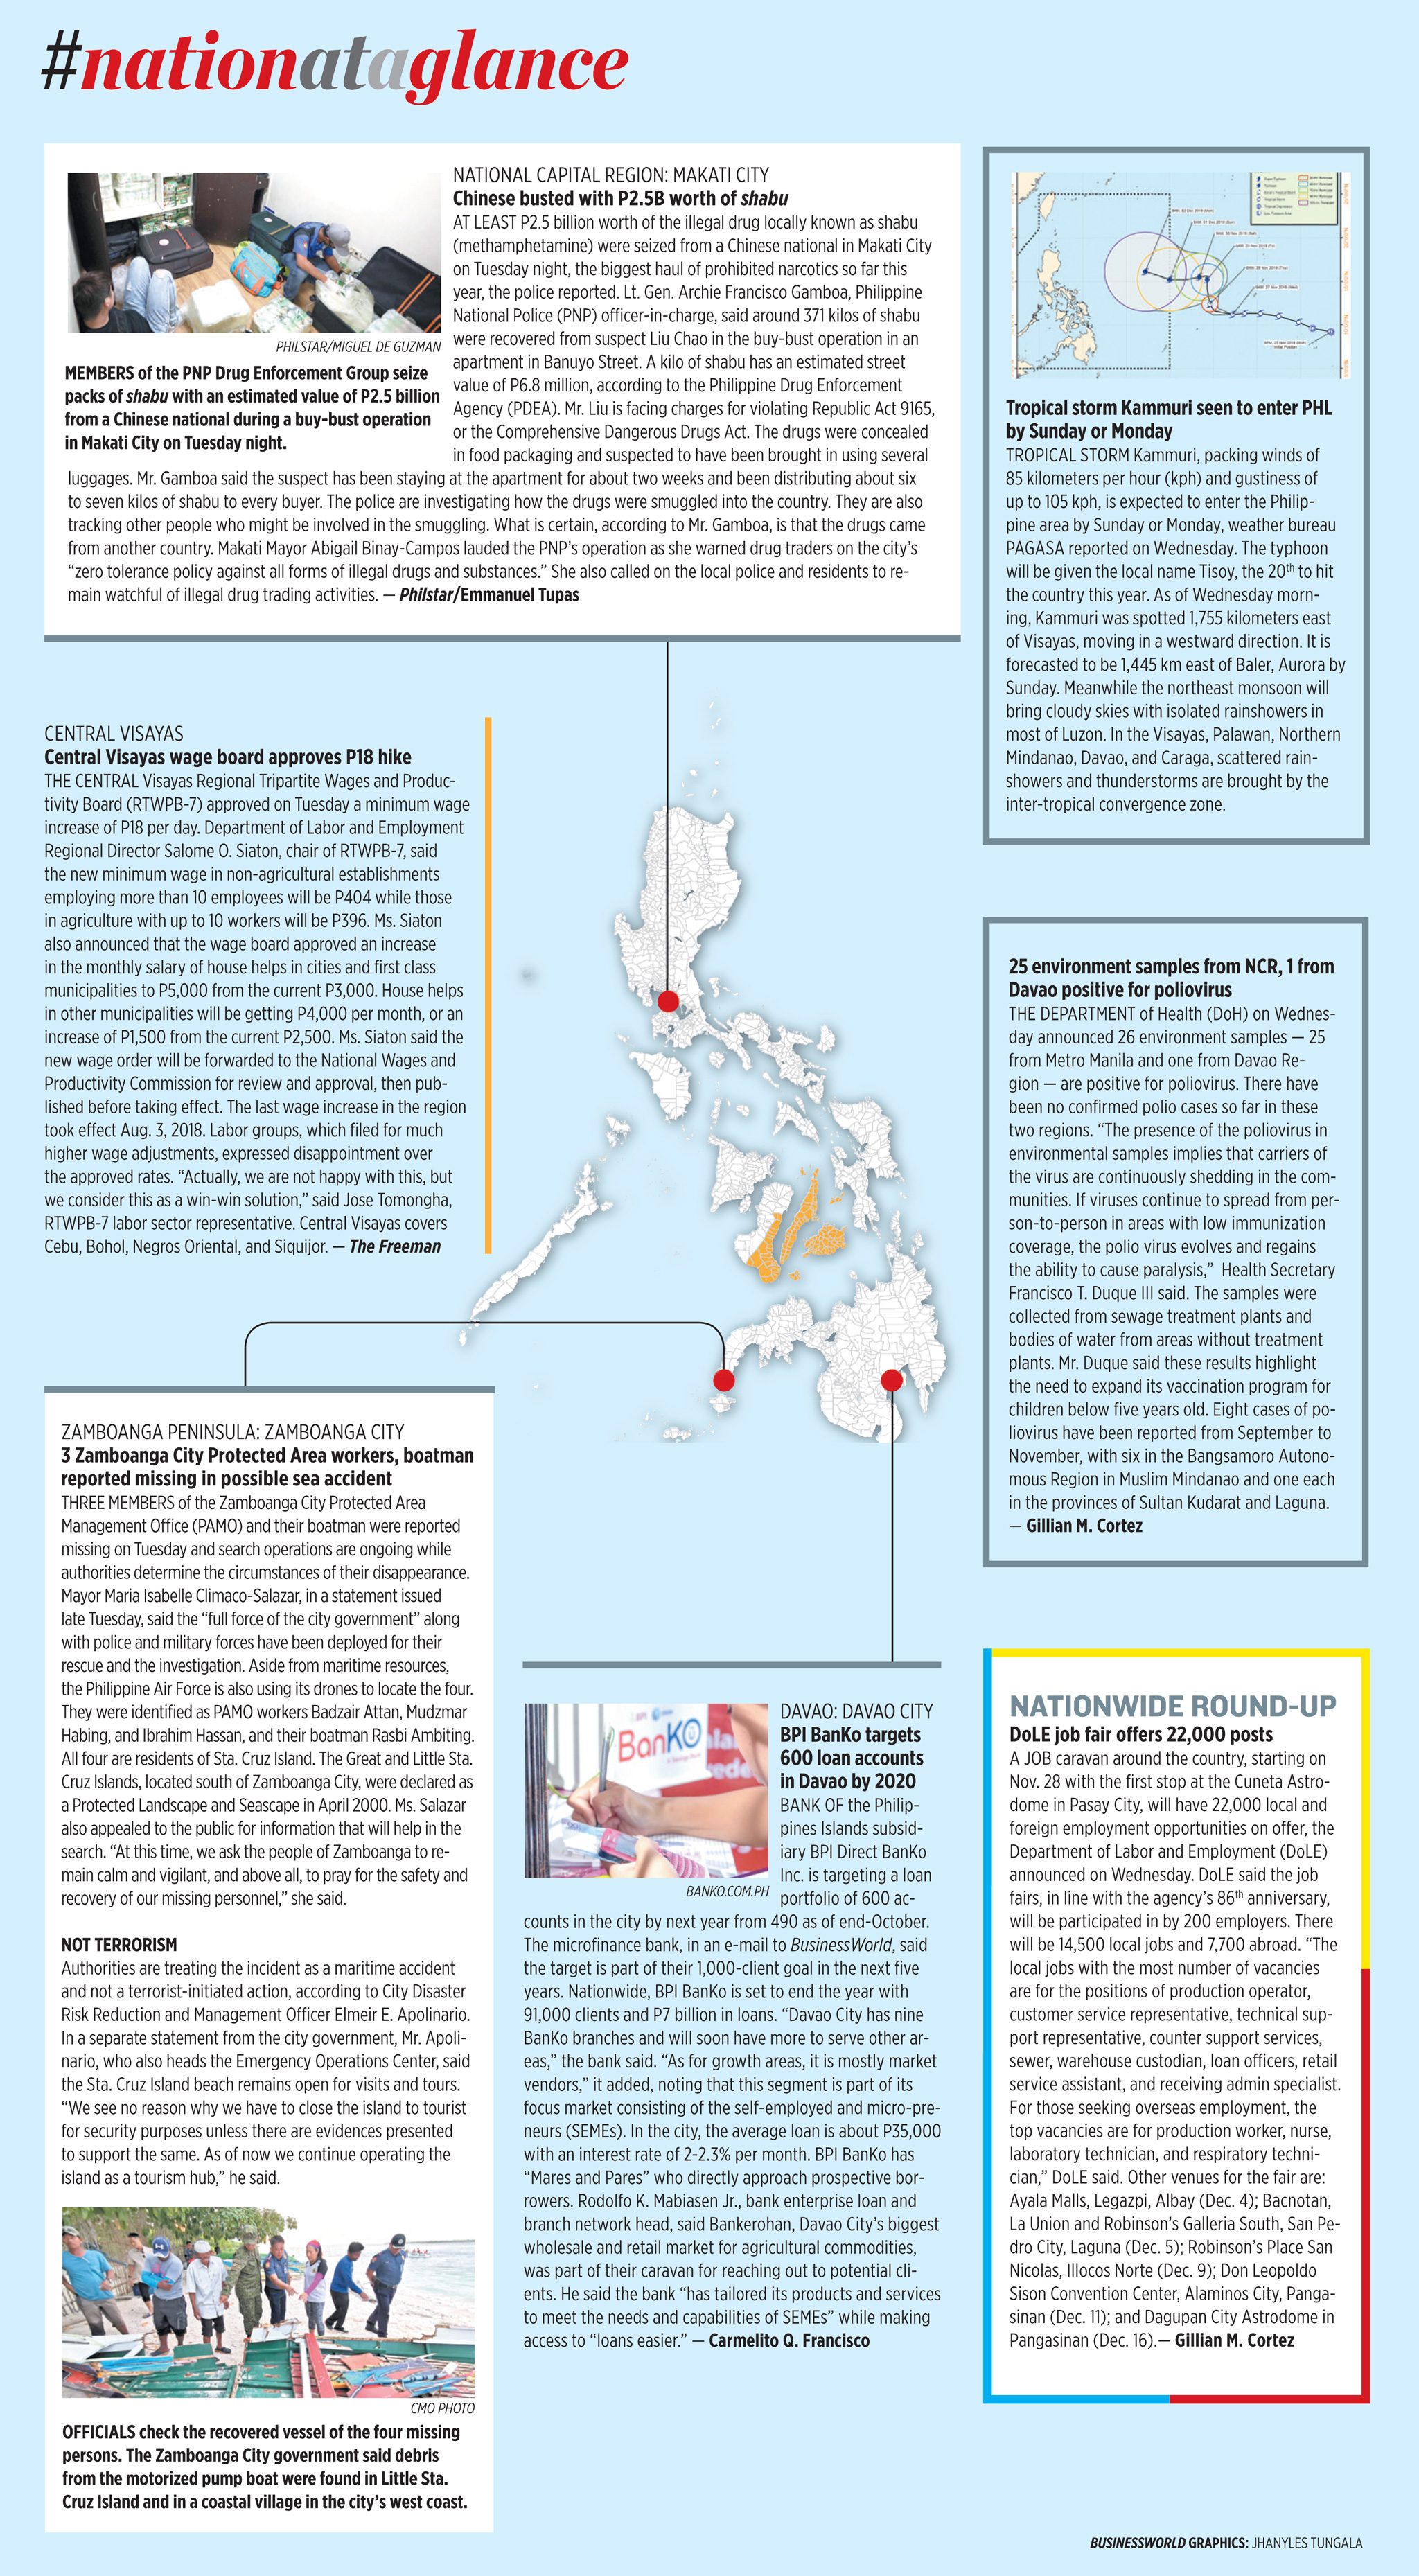 Nation at a Glance — (11/28/19)